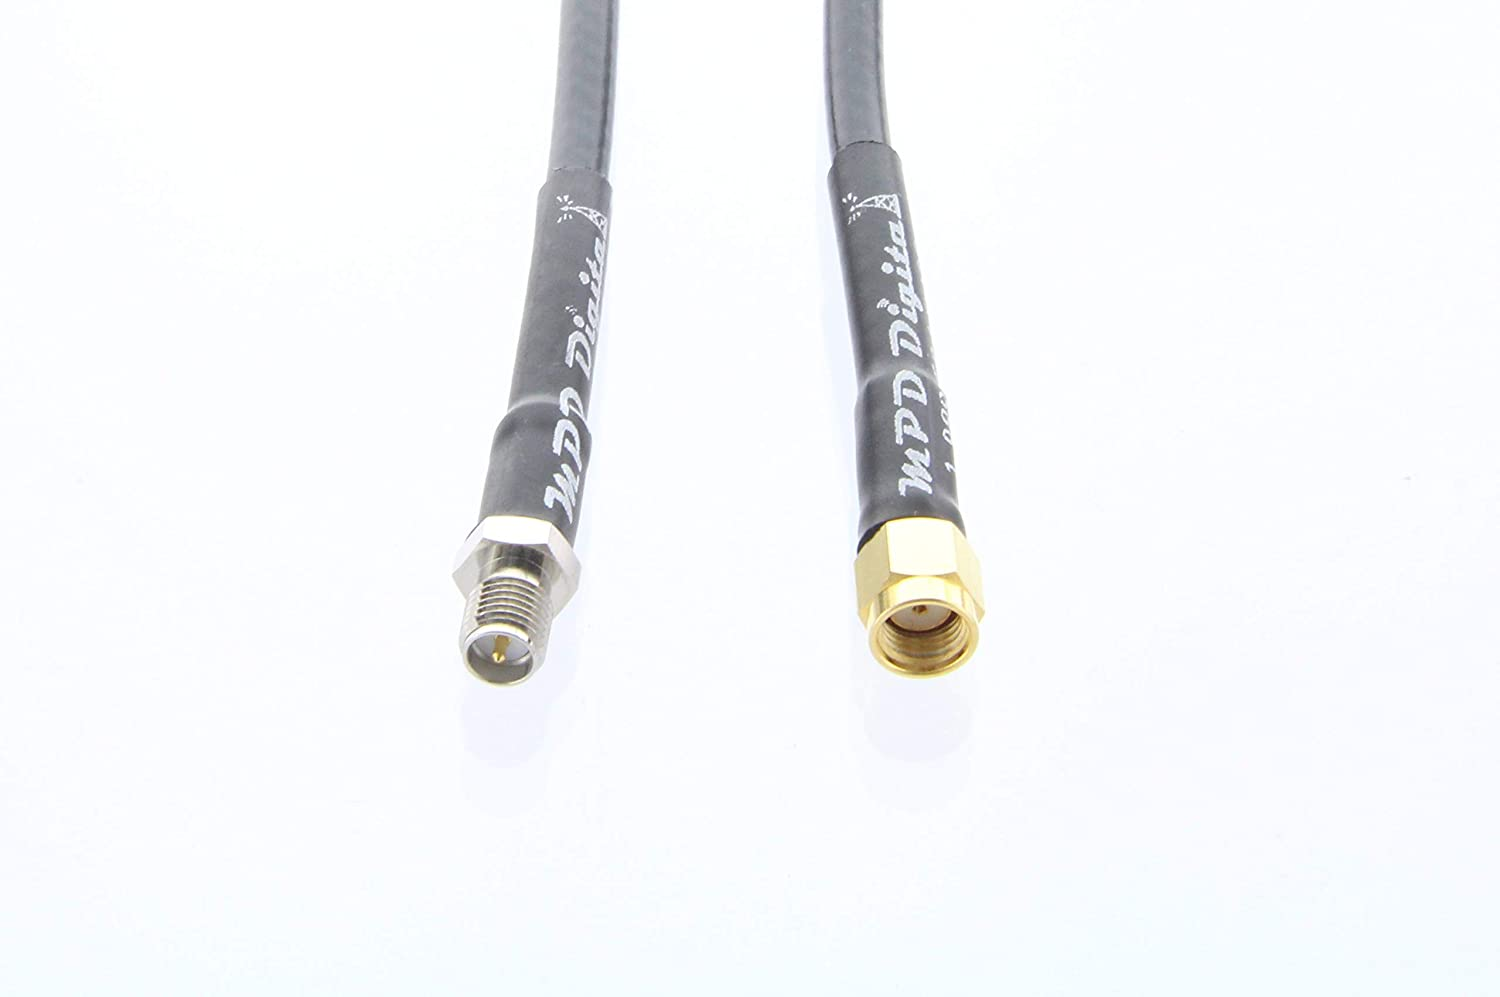 Nos Made 2,4 gHz 5 gHz 802.11 Router inalámbrico WiFi Antena Extensión Cable - 10 FT - Andrew CommScope cnt-240 Cable Coaxial Cable Coaxial de antena con ...